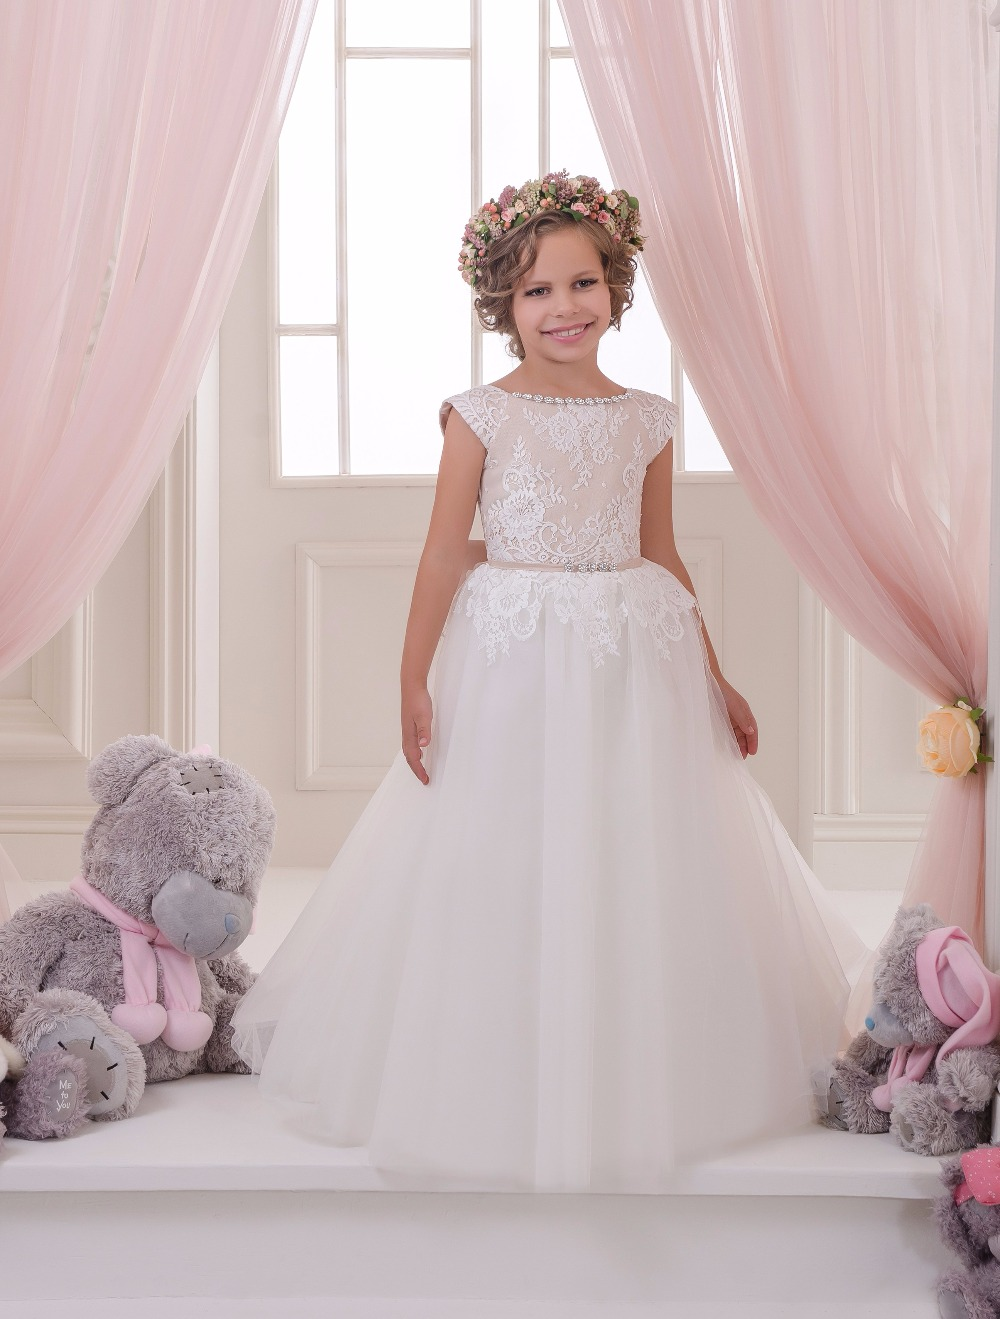 Lace Appliques Cap Sleeves Holy Communion Infant Girls Dresses Kids Beading Tulle Ball Gowns with Beading Belt  0-12 Year Old new arrival flower girls dresses high quality lace appliques beading short sleeve ball gowns custom holy first communion gowns